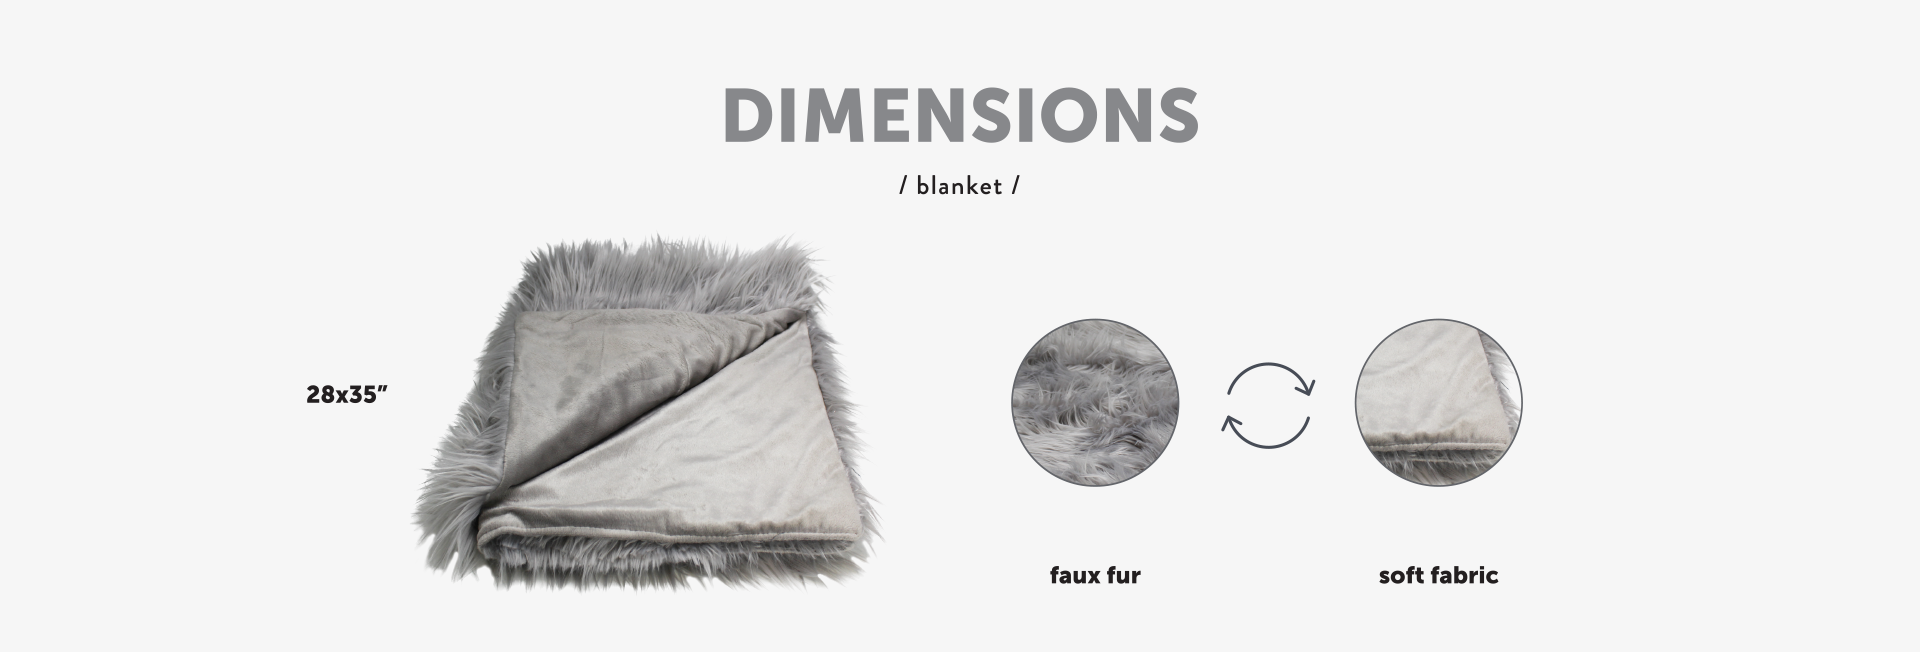 Size-blanket-faux-fur-for-dogs-english